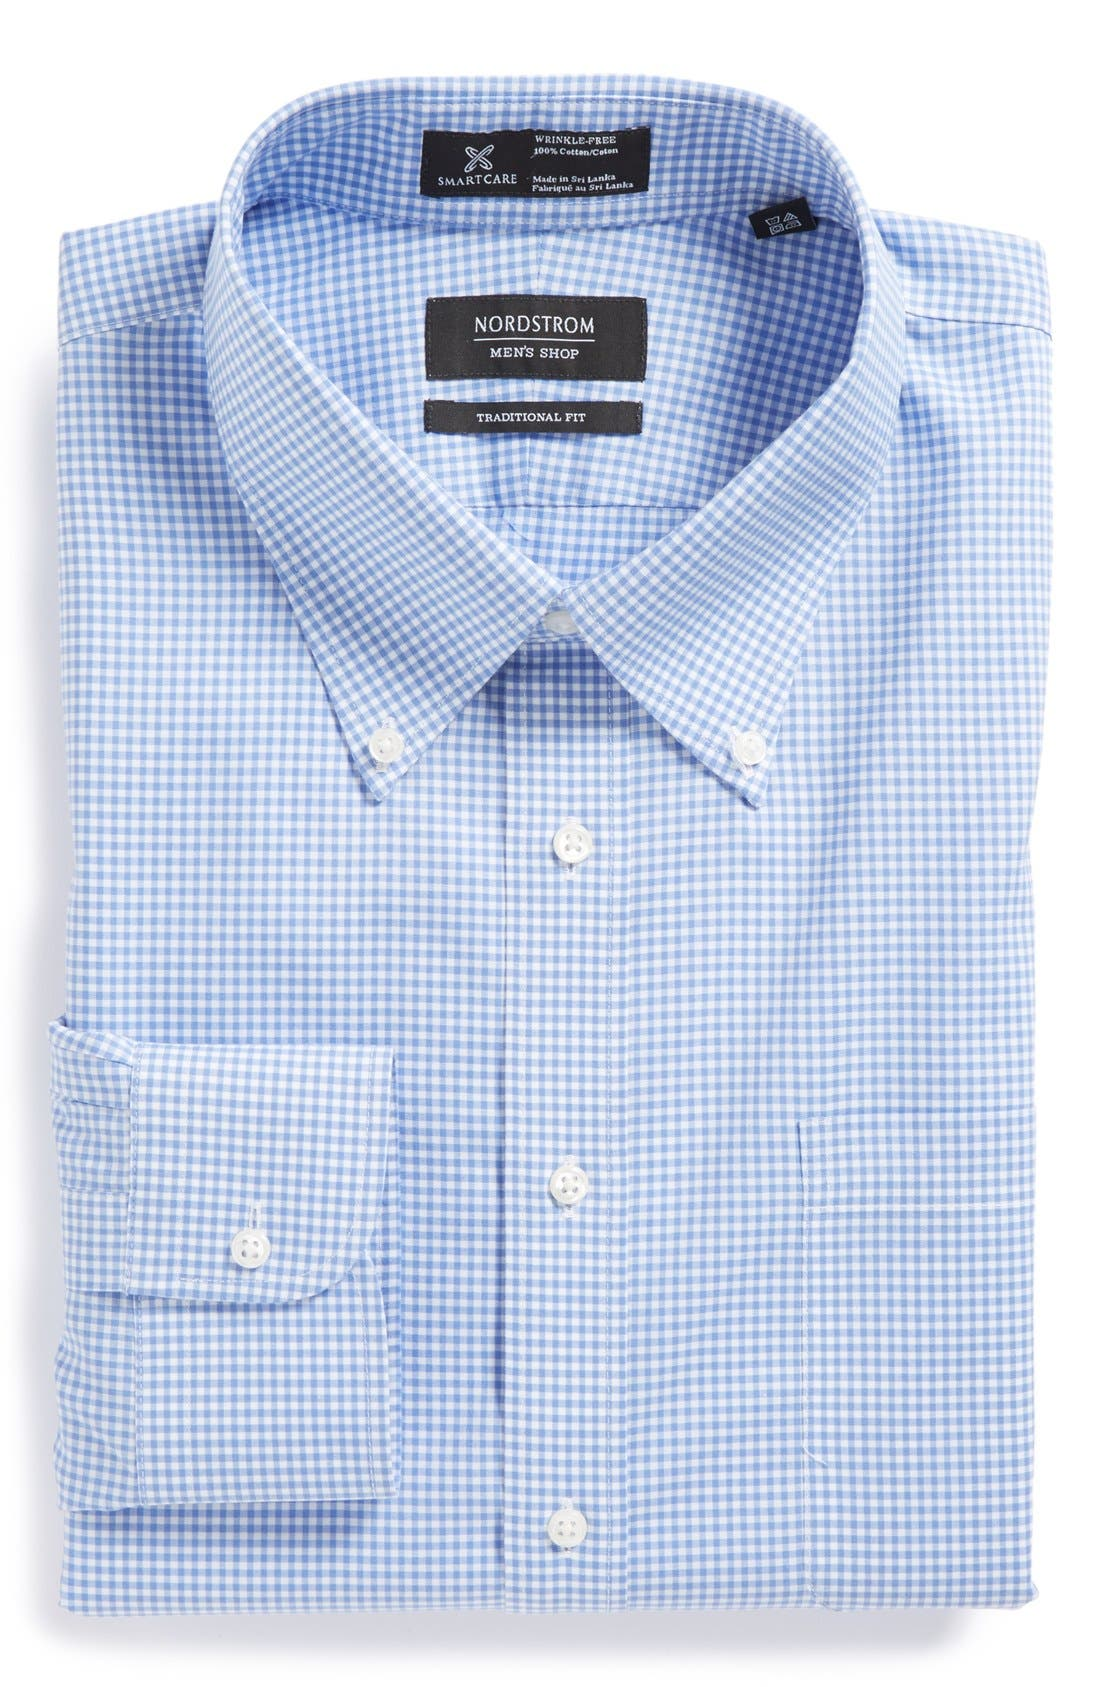 Main Image - Nordstrom Men's Shop Smartcare™ Traditional Fit Gingham Dress Shirt